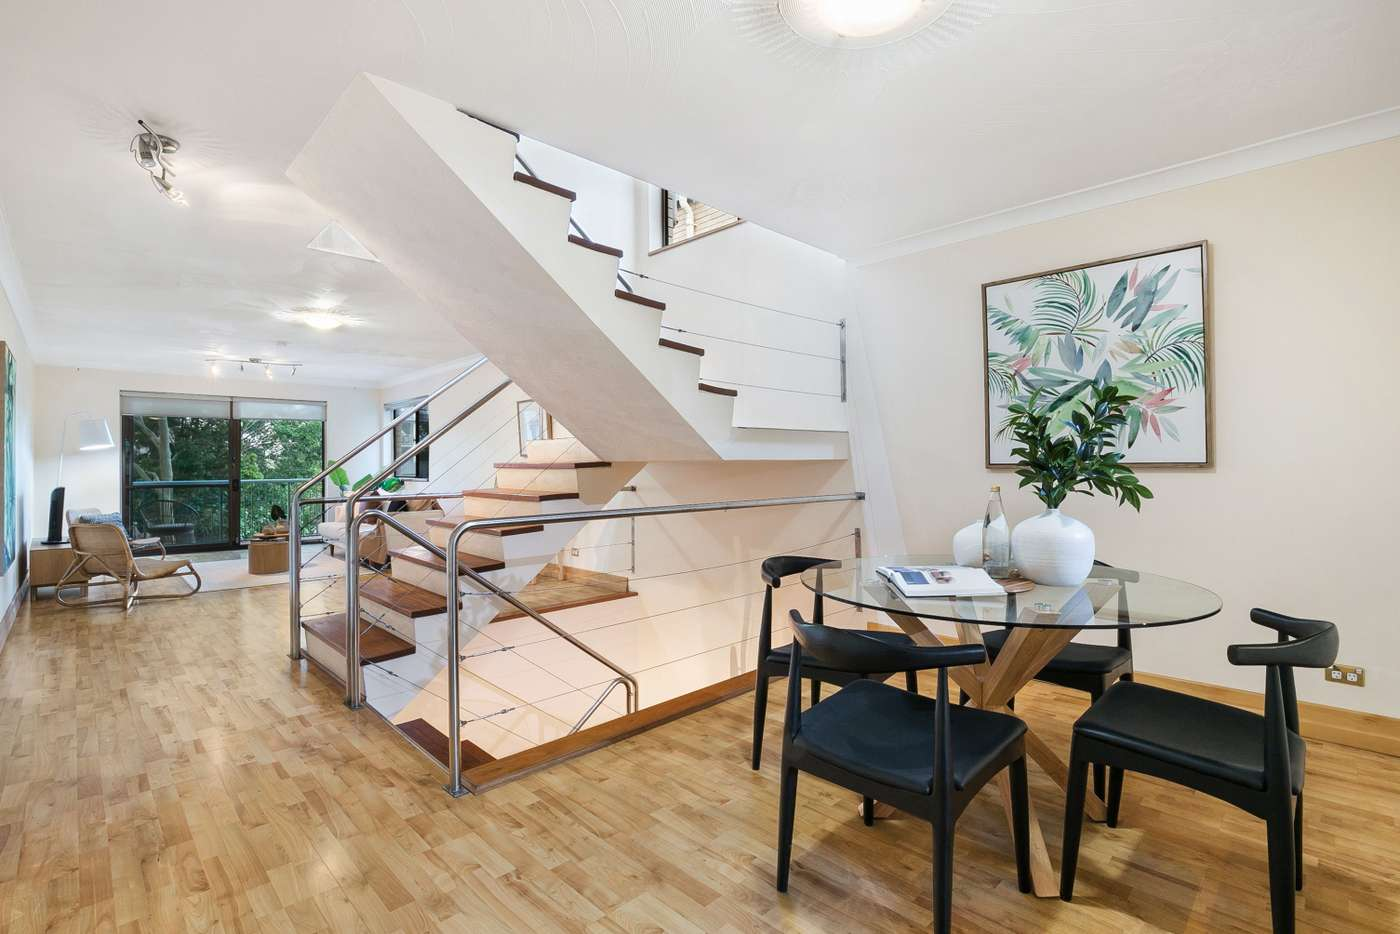 Main view of Homely apartment listing, 22/12 Patrick Lane, Toowong, QLD 4066